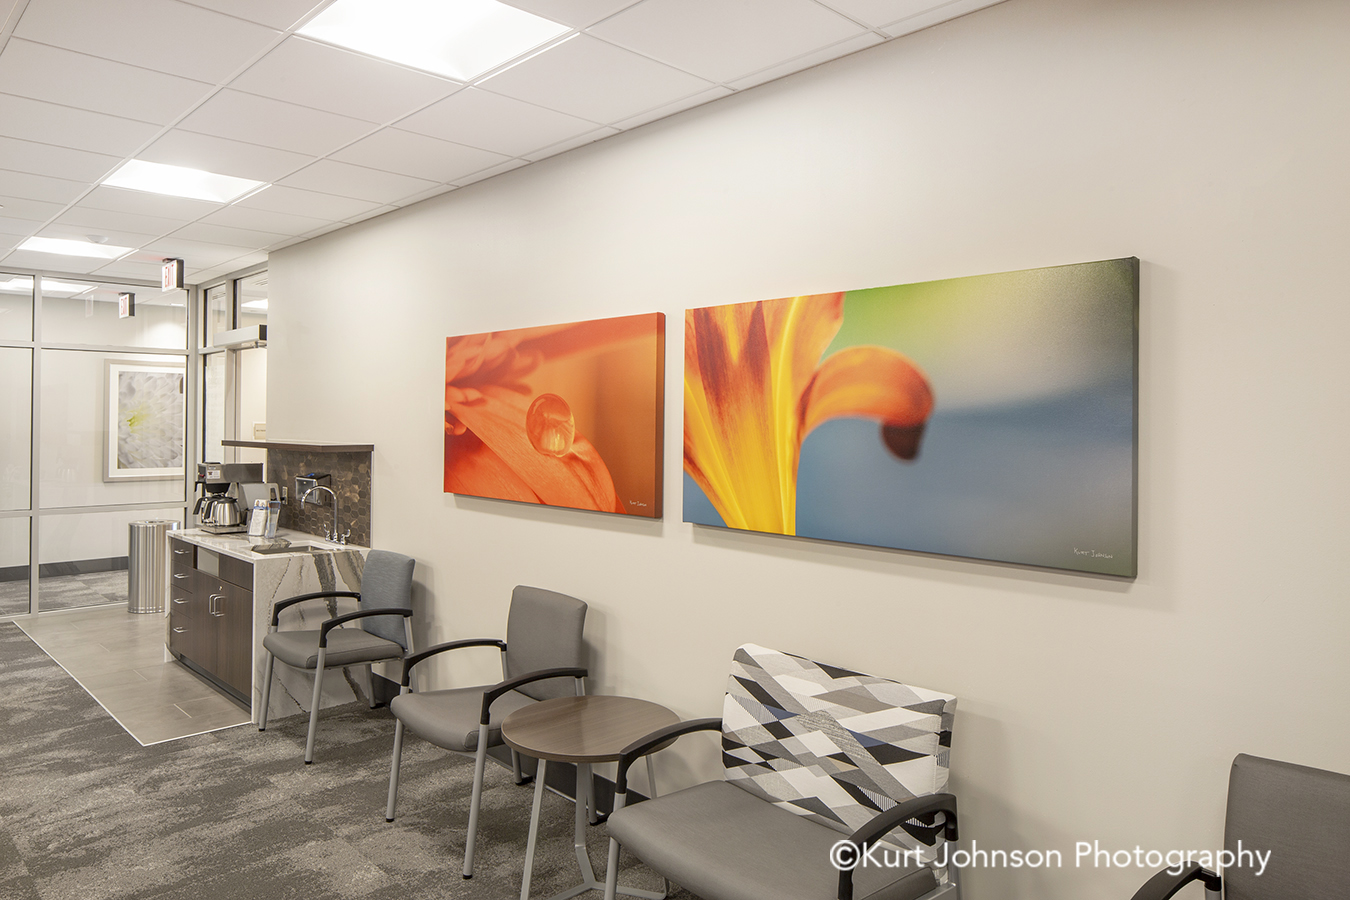 Methodist Jennie Edmundson Hospital Council Bluffs Iowa Framed Art Flower Flowers Botanicals Healthcare Installation